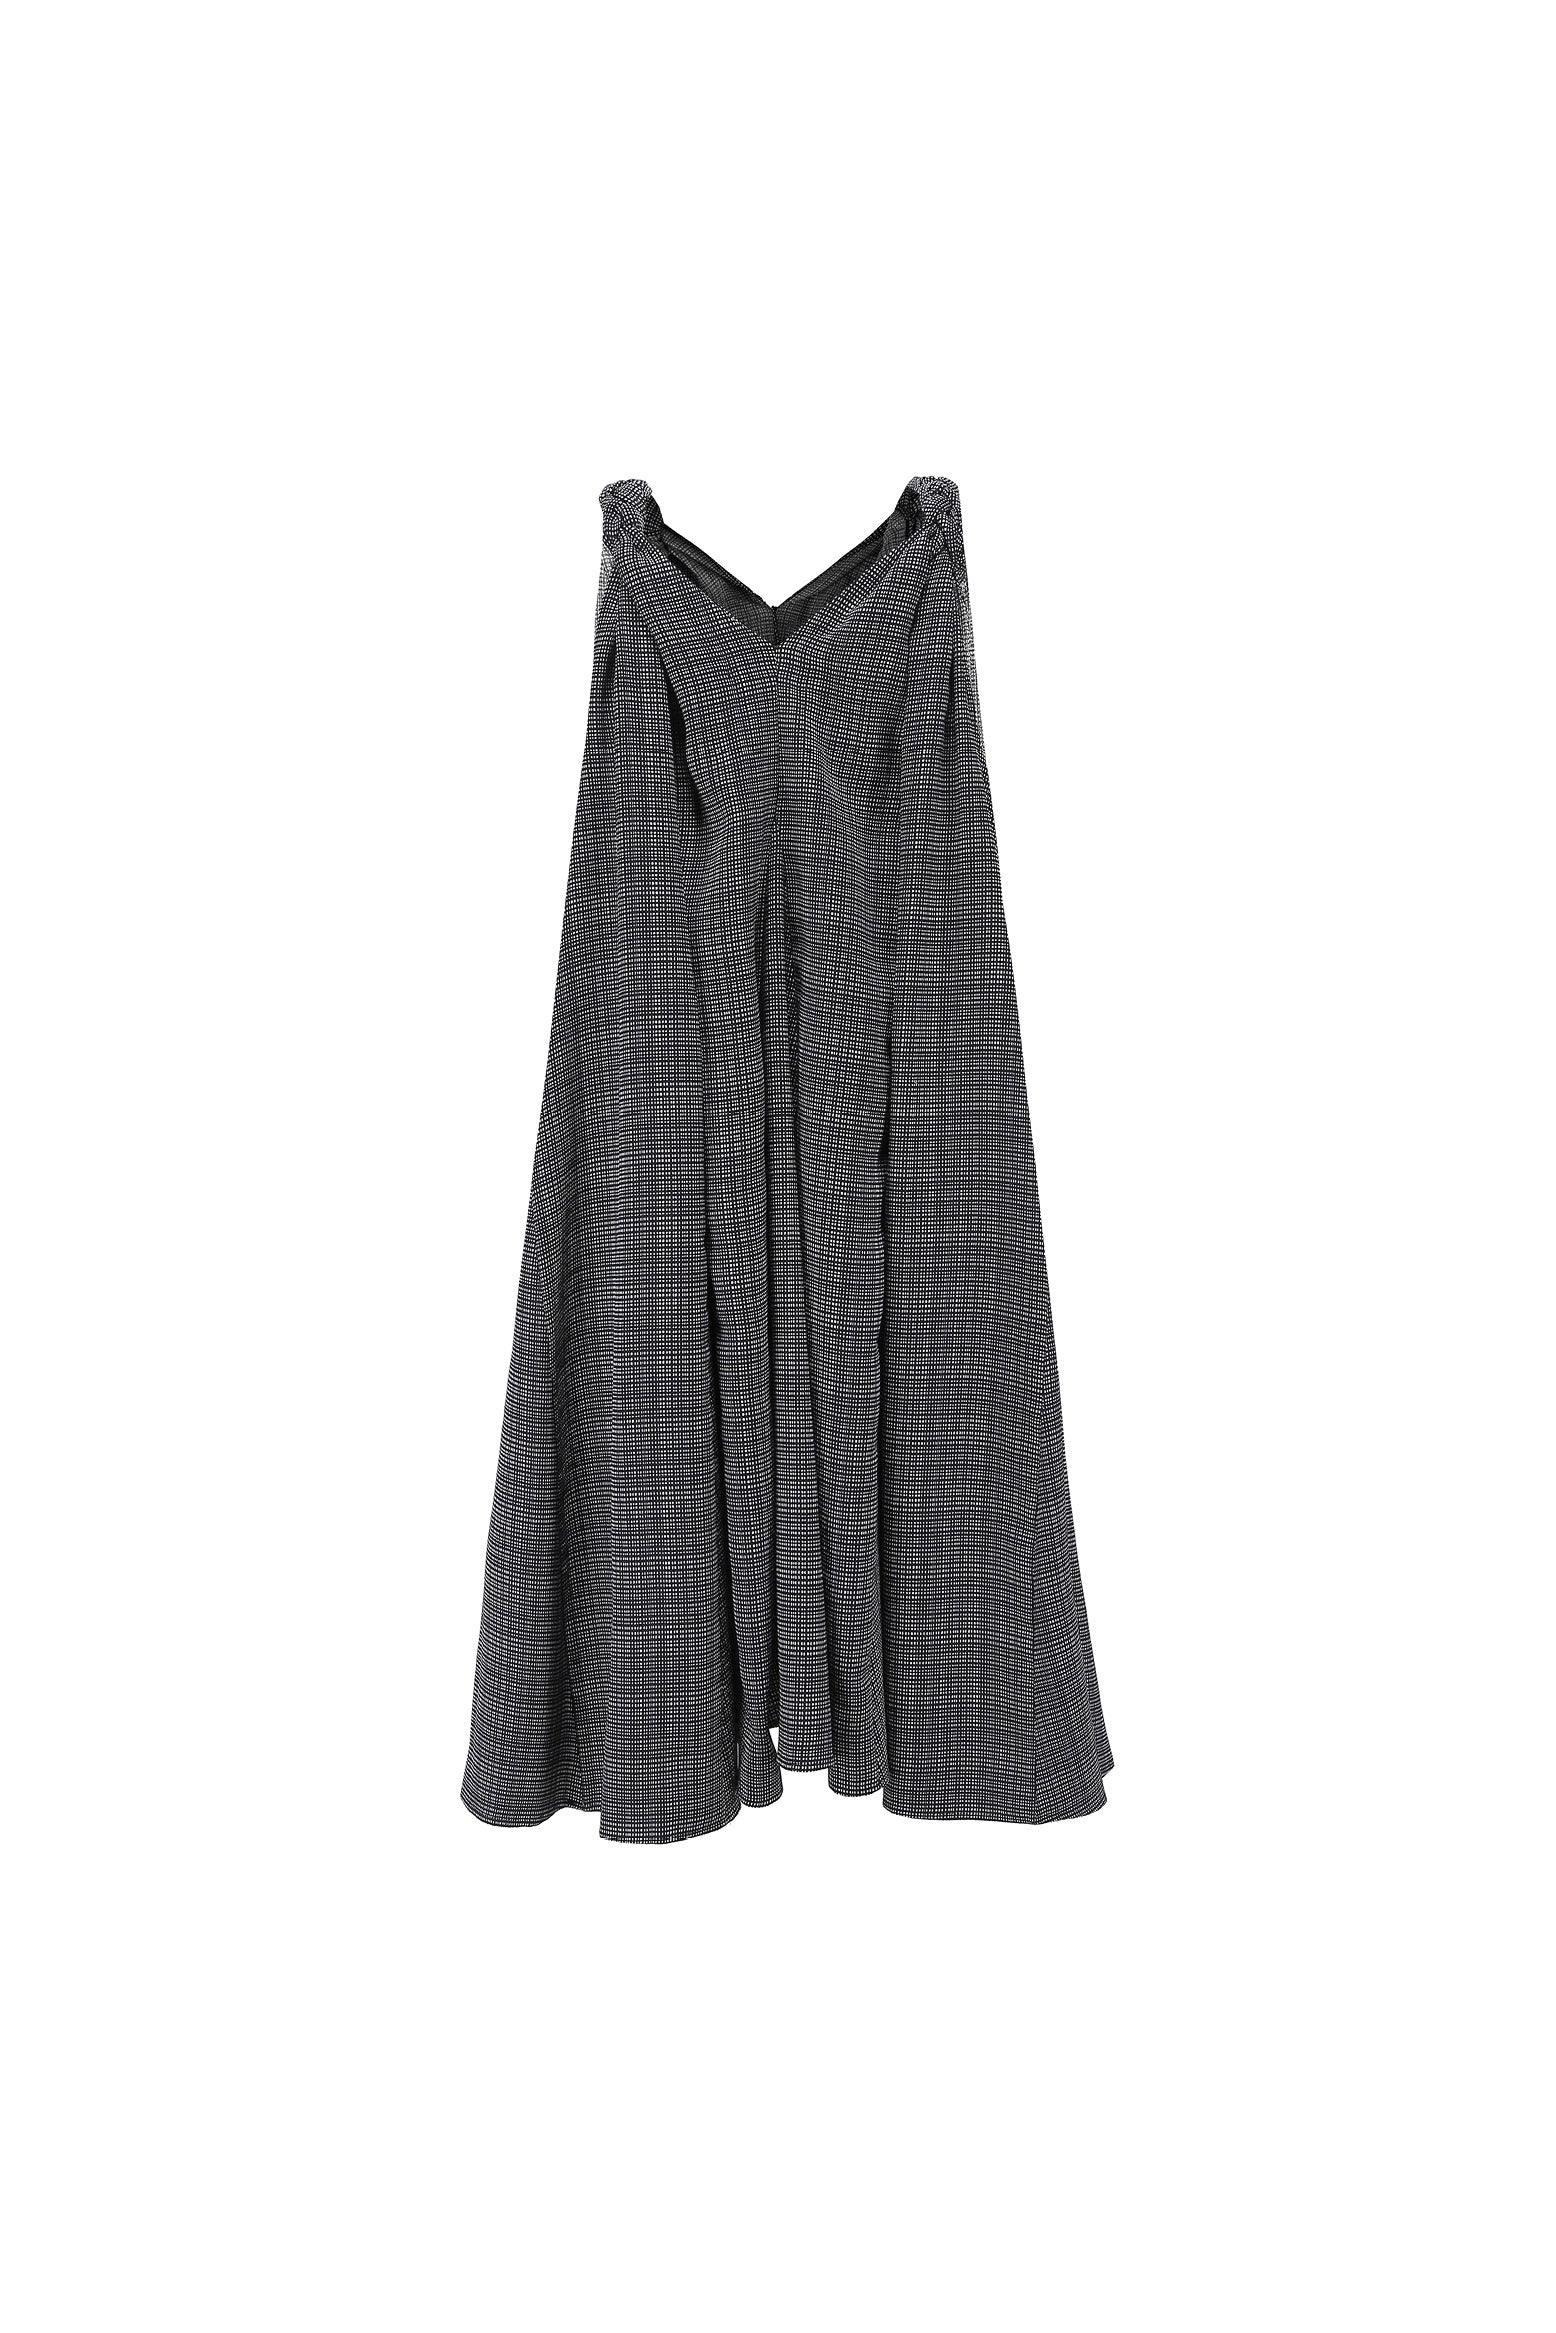 Gloria Parachute dress in black grid